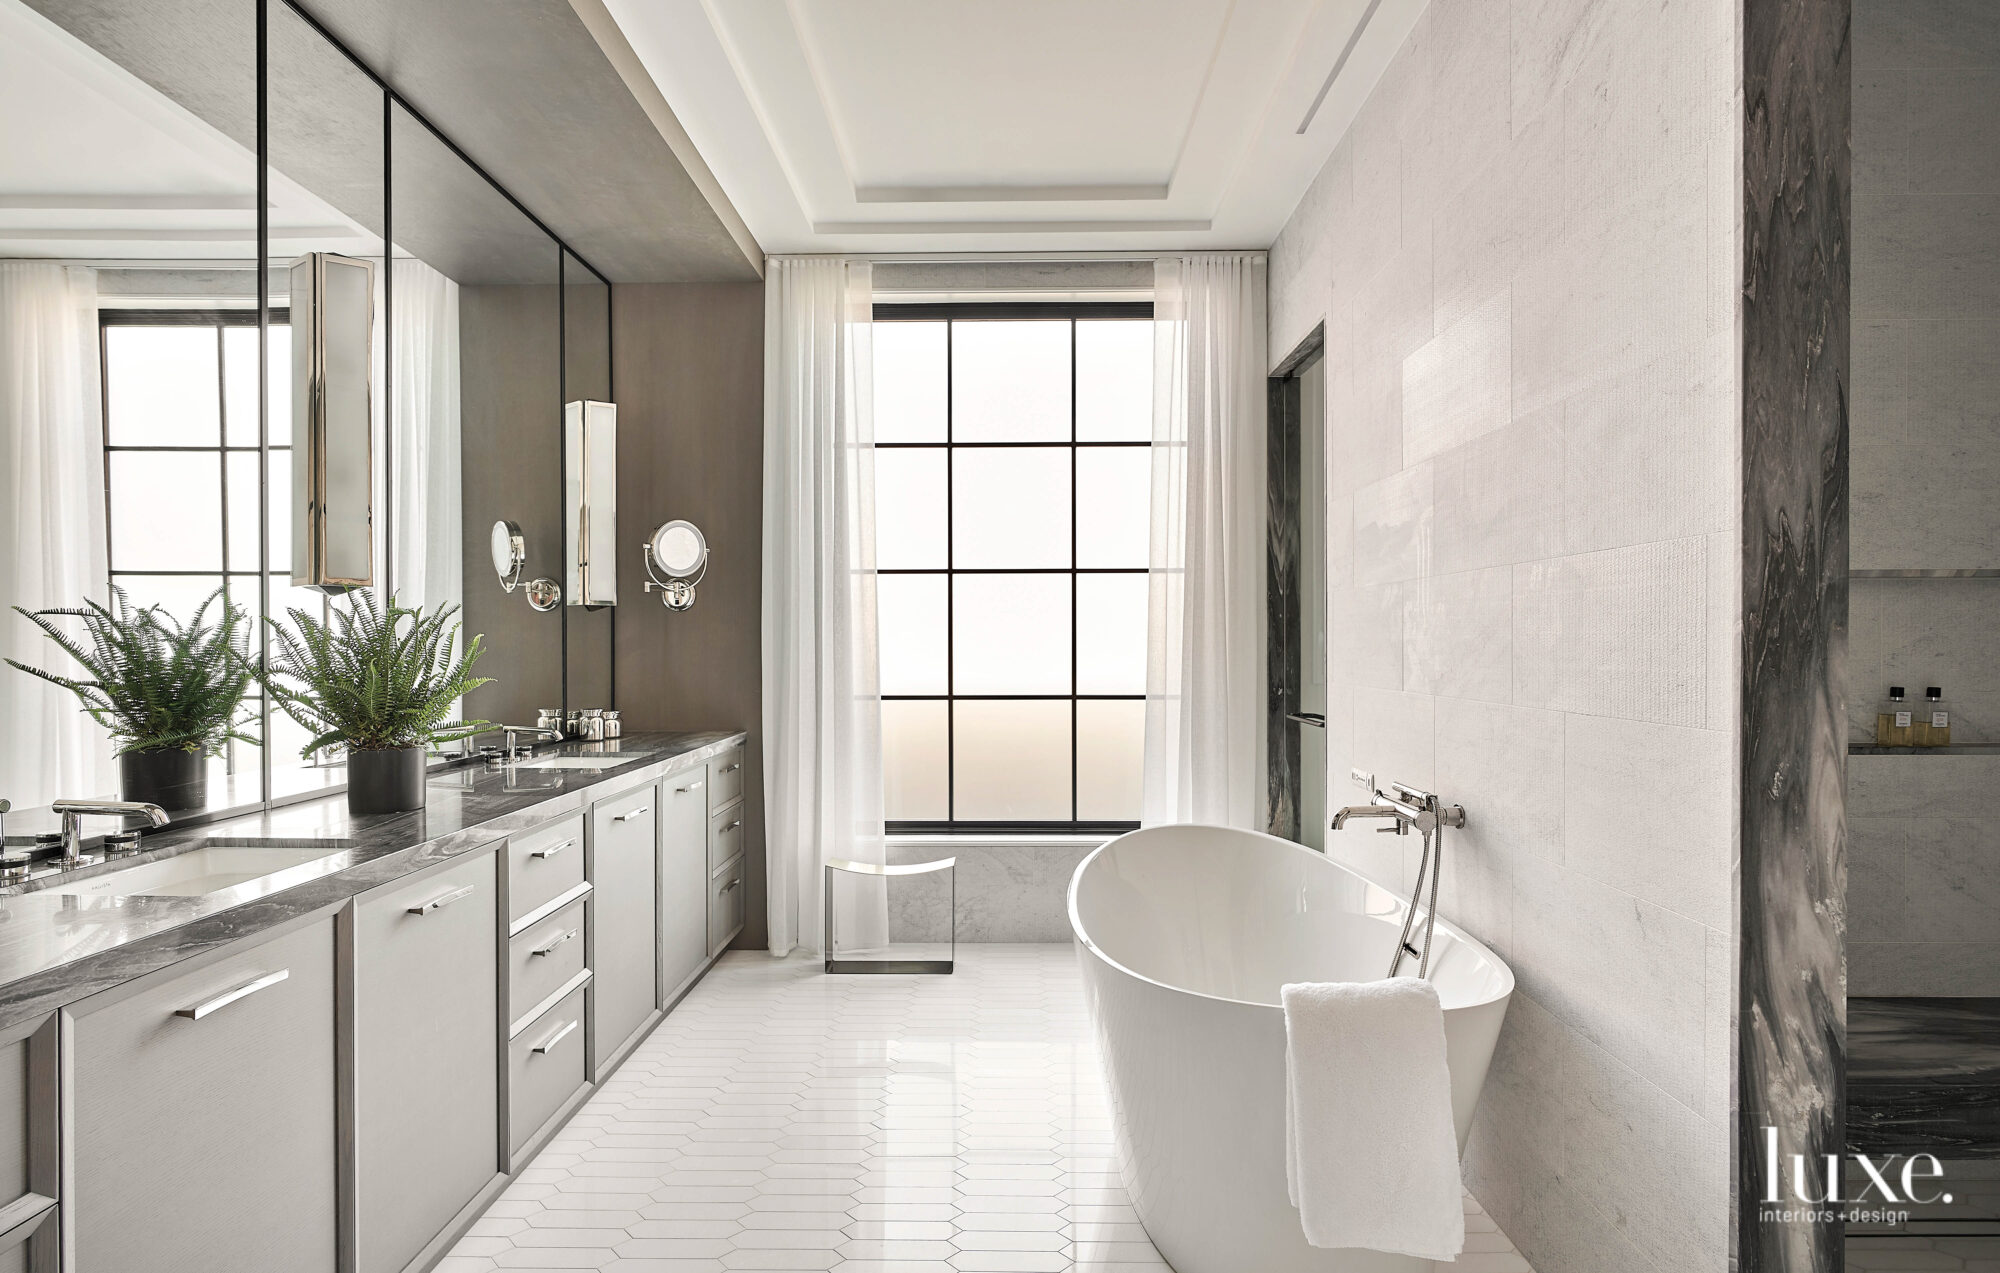 The stand-alone tub sits in front of a marble wall in the master bathroom.